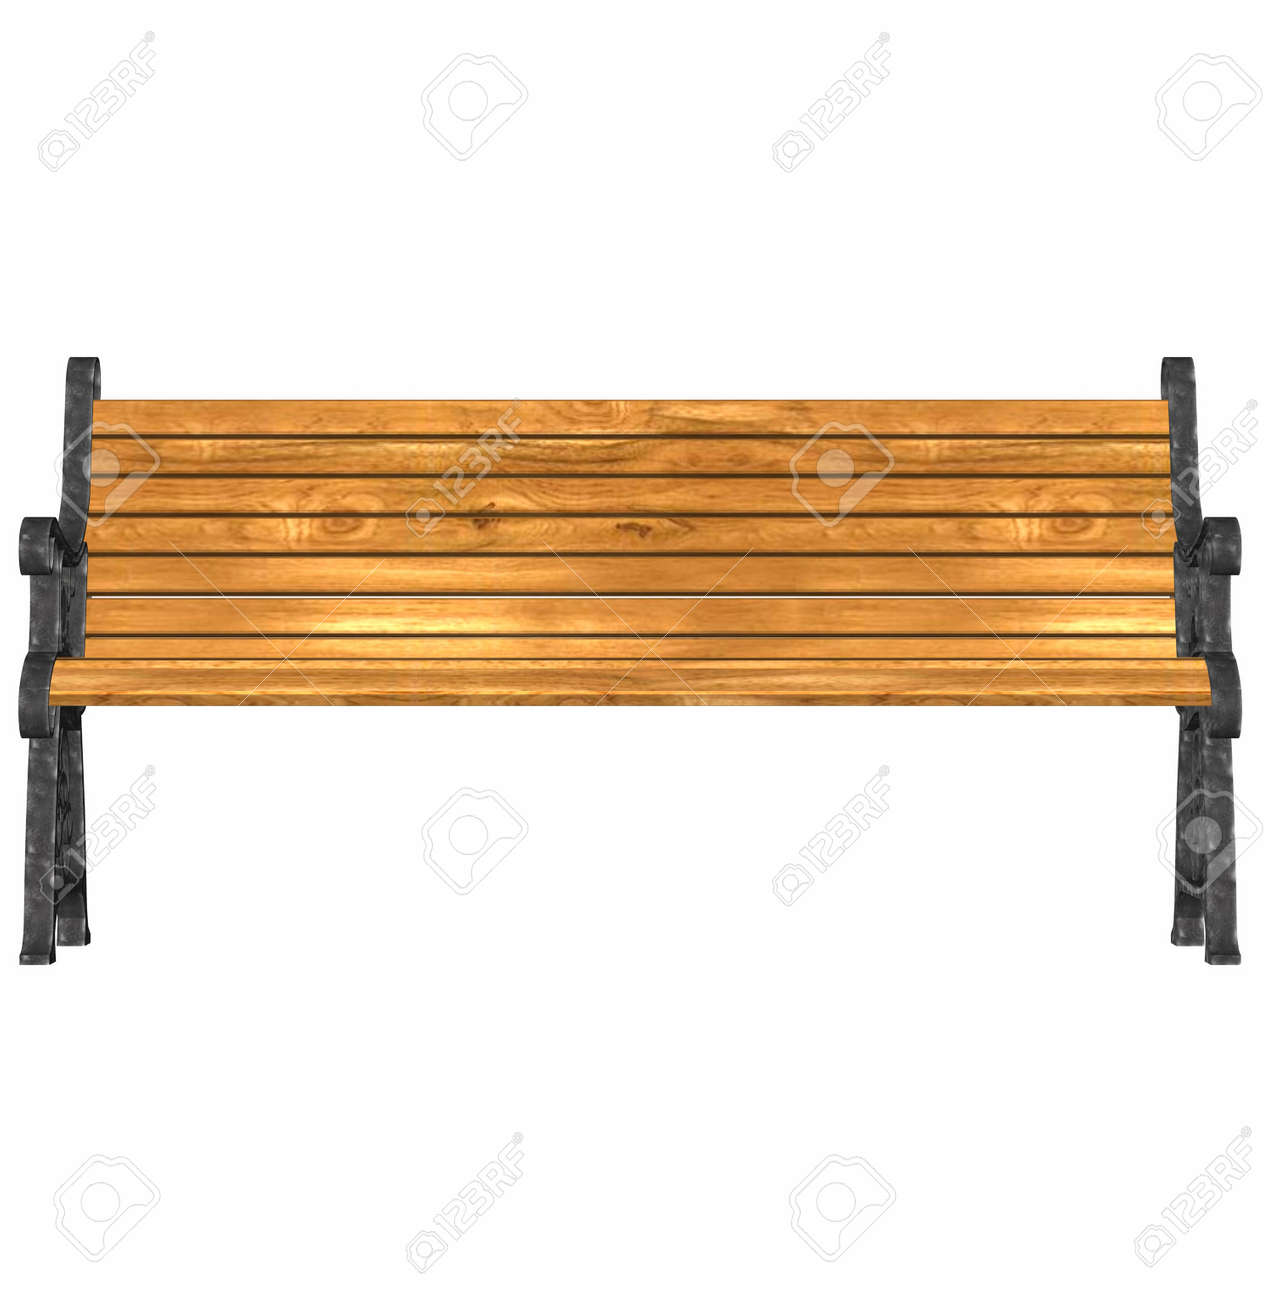 3d Render Of A Park Bench At 600 Dpi Stock Photo Picture And